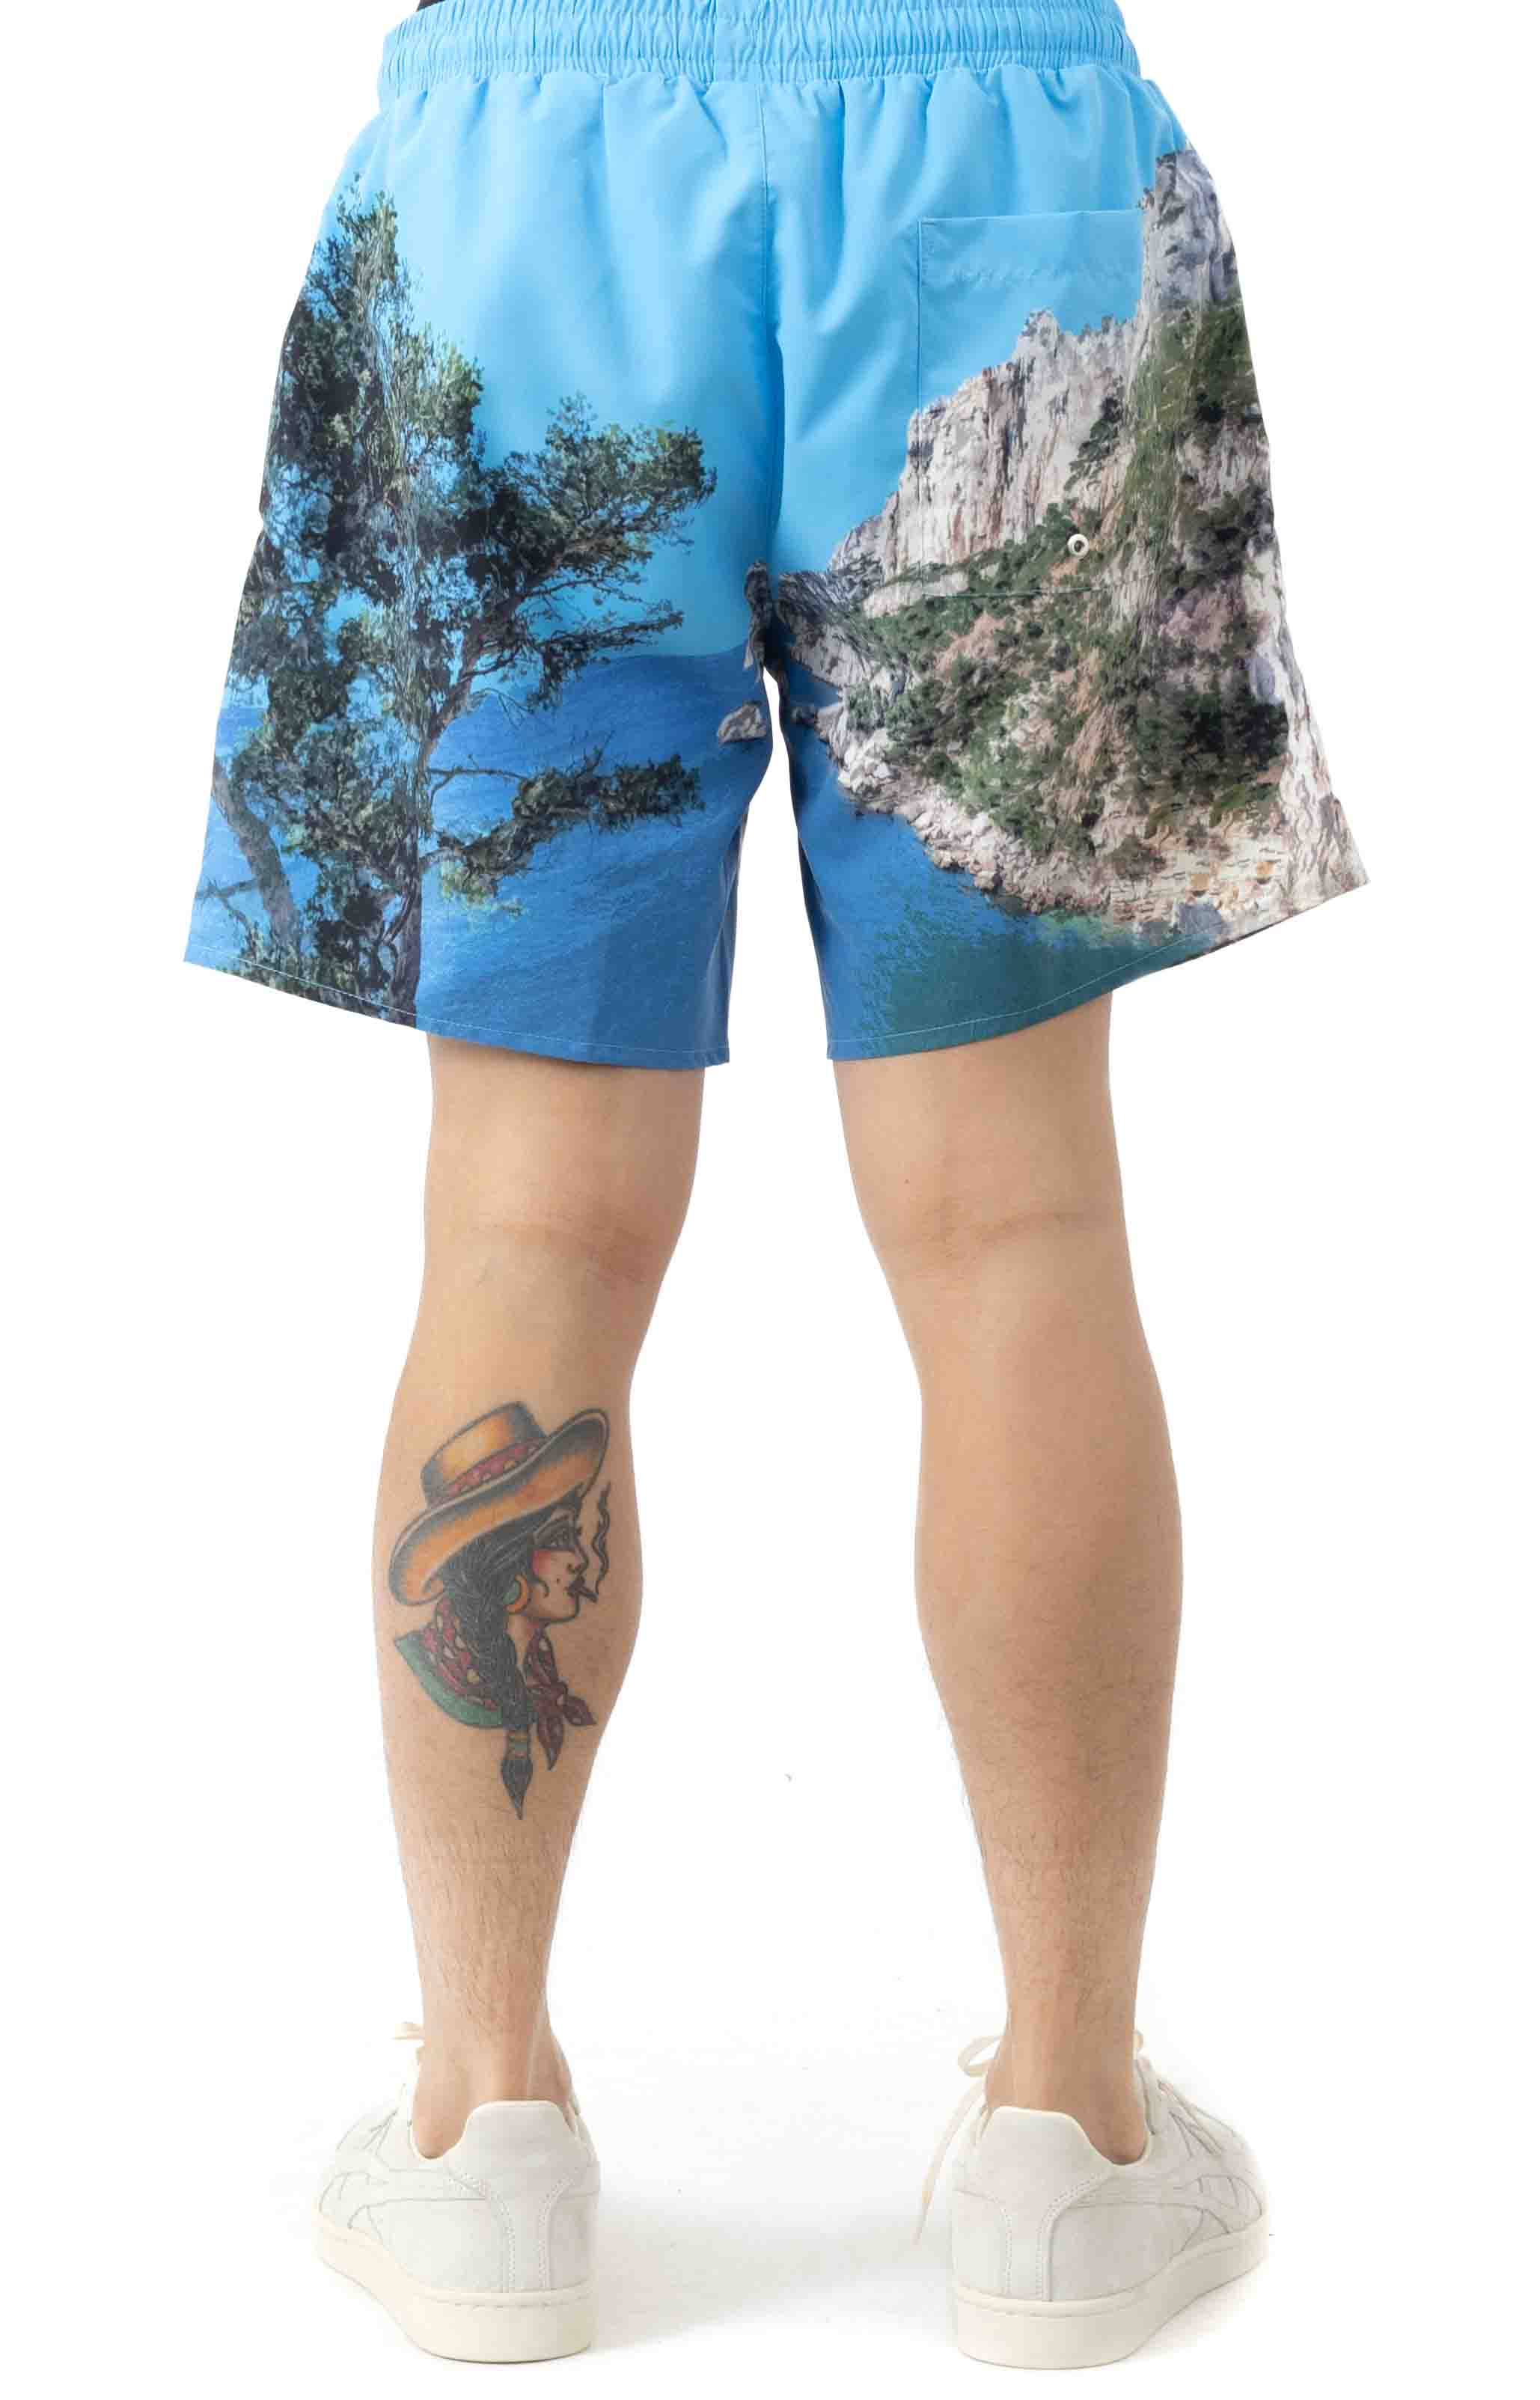 Lace-Up Waist Print Swimming Trunks - Blue/White 3